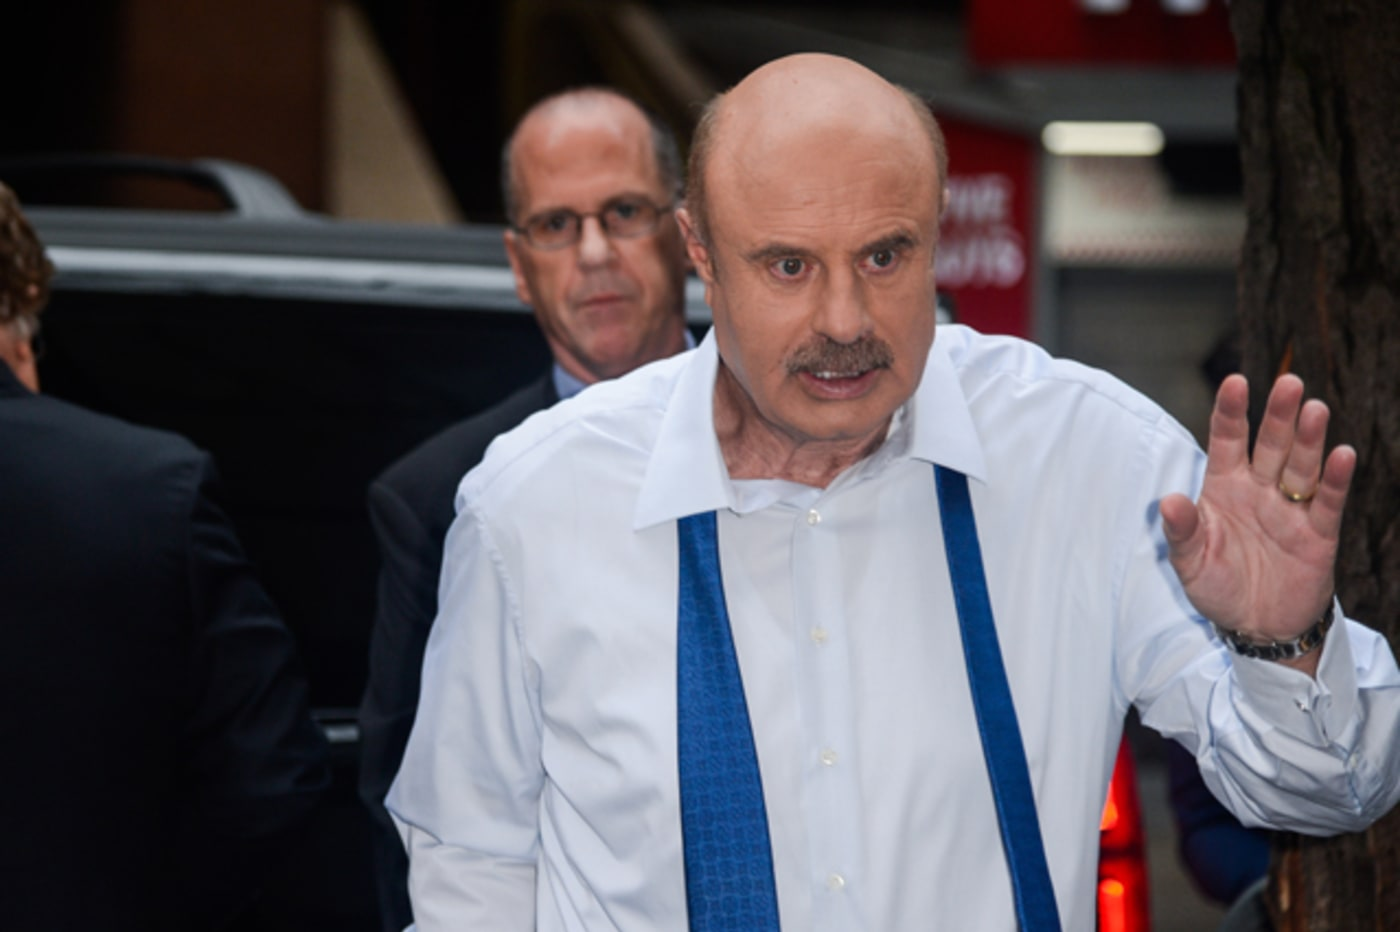 Phil McGraw enters the 'Today Show' taping